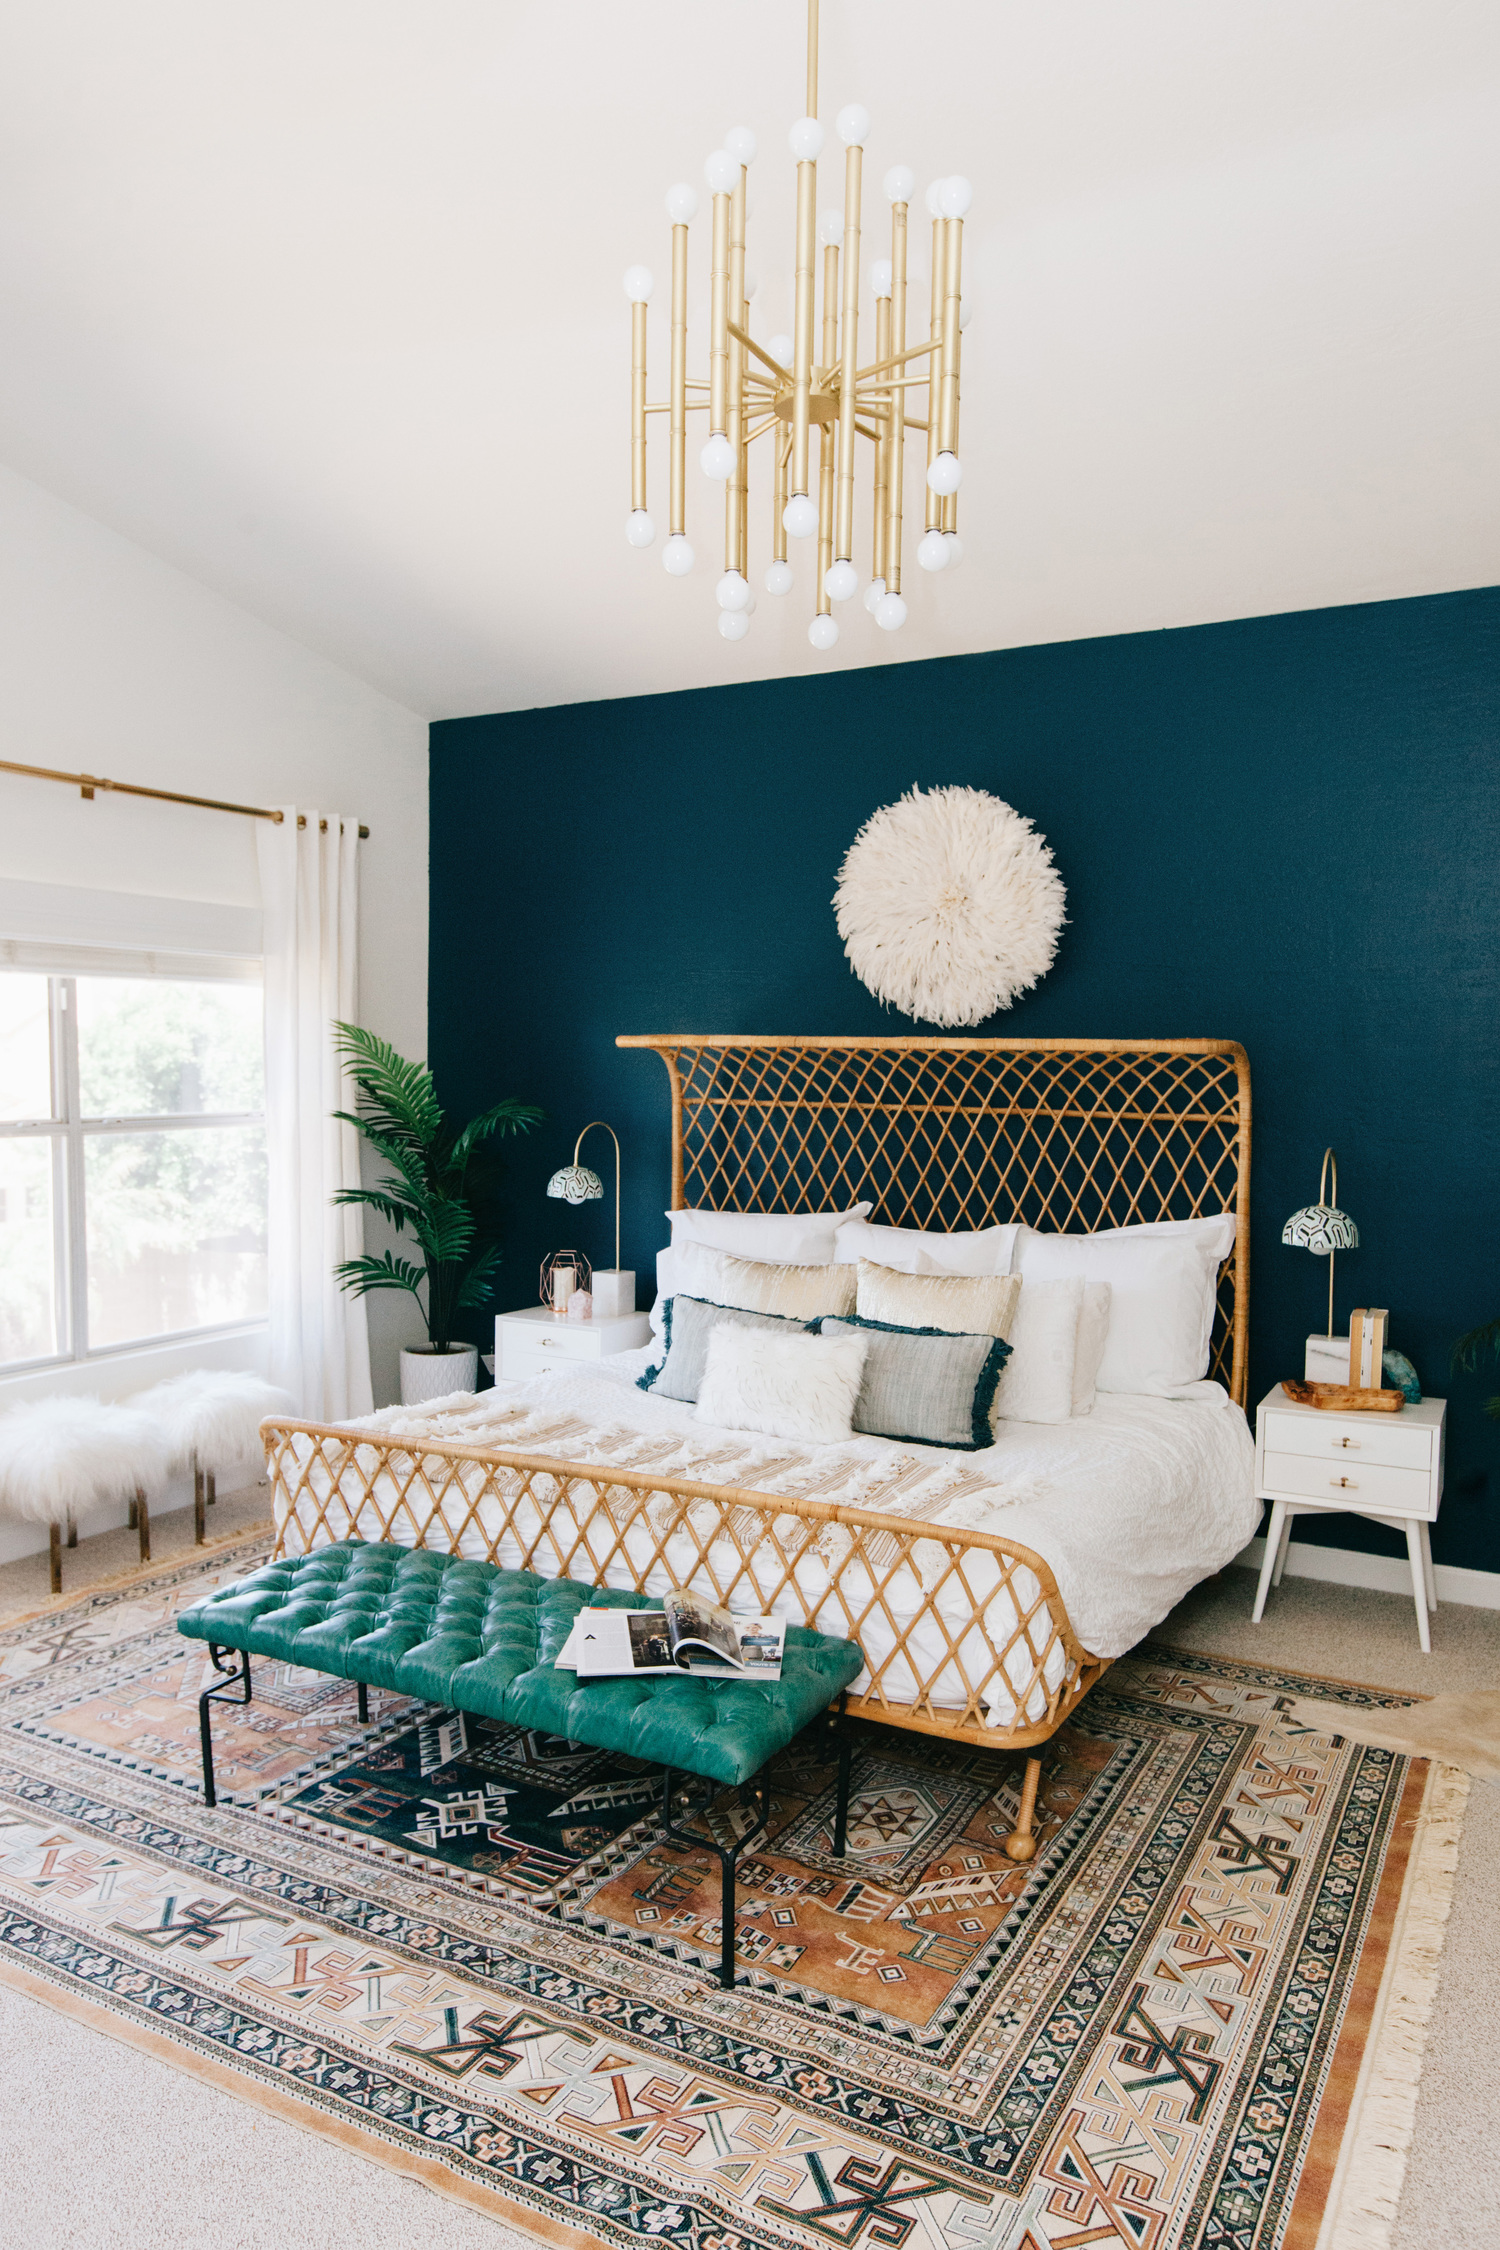 A Gorgeous Luxe Master Bedroom With Only One Wall Painted With Deep Teal Hue. The Rattan Bed Animal Skin Rug And Plants Created A Boho-chic Bedroom Style . & One-wall-painted-room \u0026 A Gorgeous Luxe Master Bedroom With Only One ...